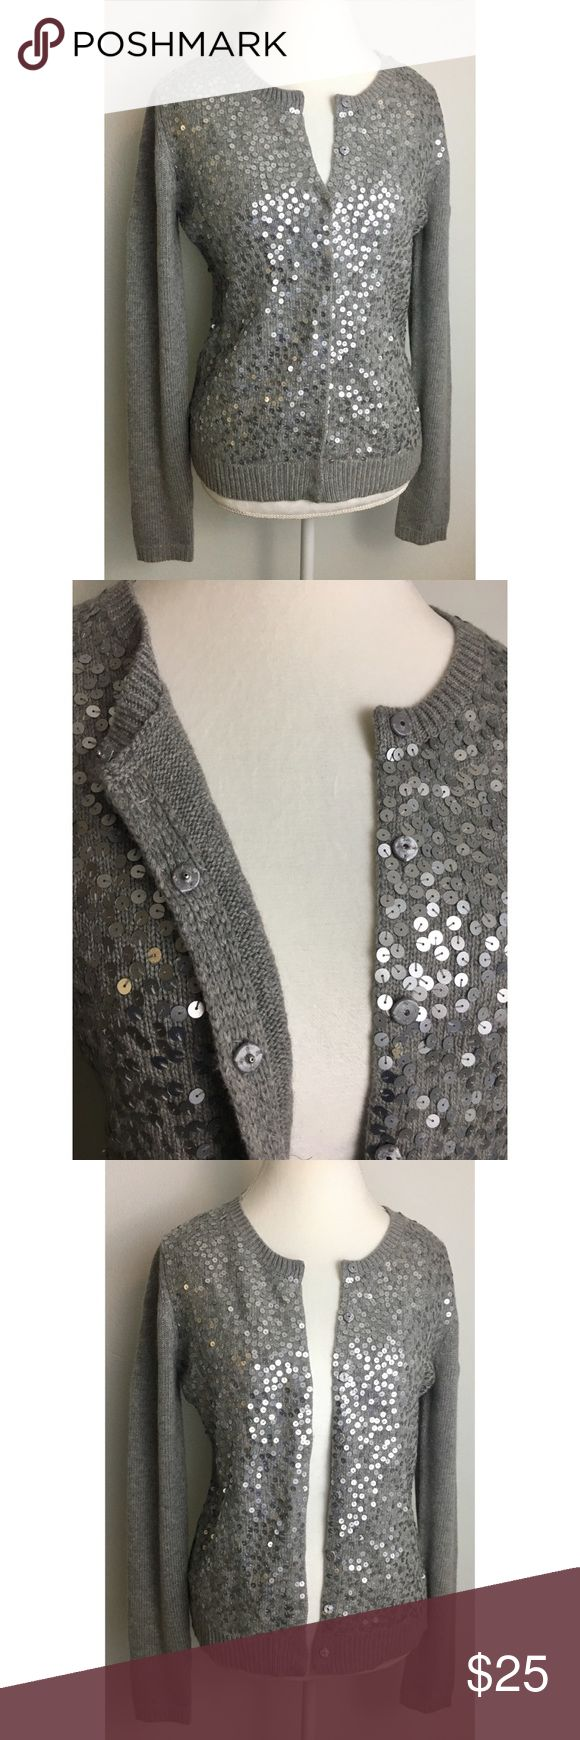 "Ann Taylor Gray Sequin Cardigan Sweater Size M Ann Taylor Sequin Cardigan  ALL sequins still intact  Snap Front Button  Pit to Pit 19"" Length 25""   33% Rayon  23% Nylon  19% Wool 18% Cotton  4% Rabbit Hair  3% Cashmere  Fast Shipping! Ann Taylor Sweaters Cardigans"